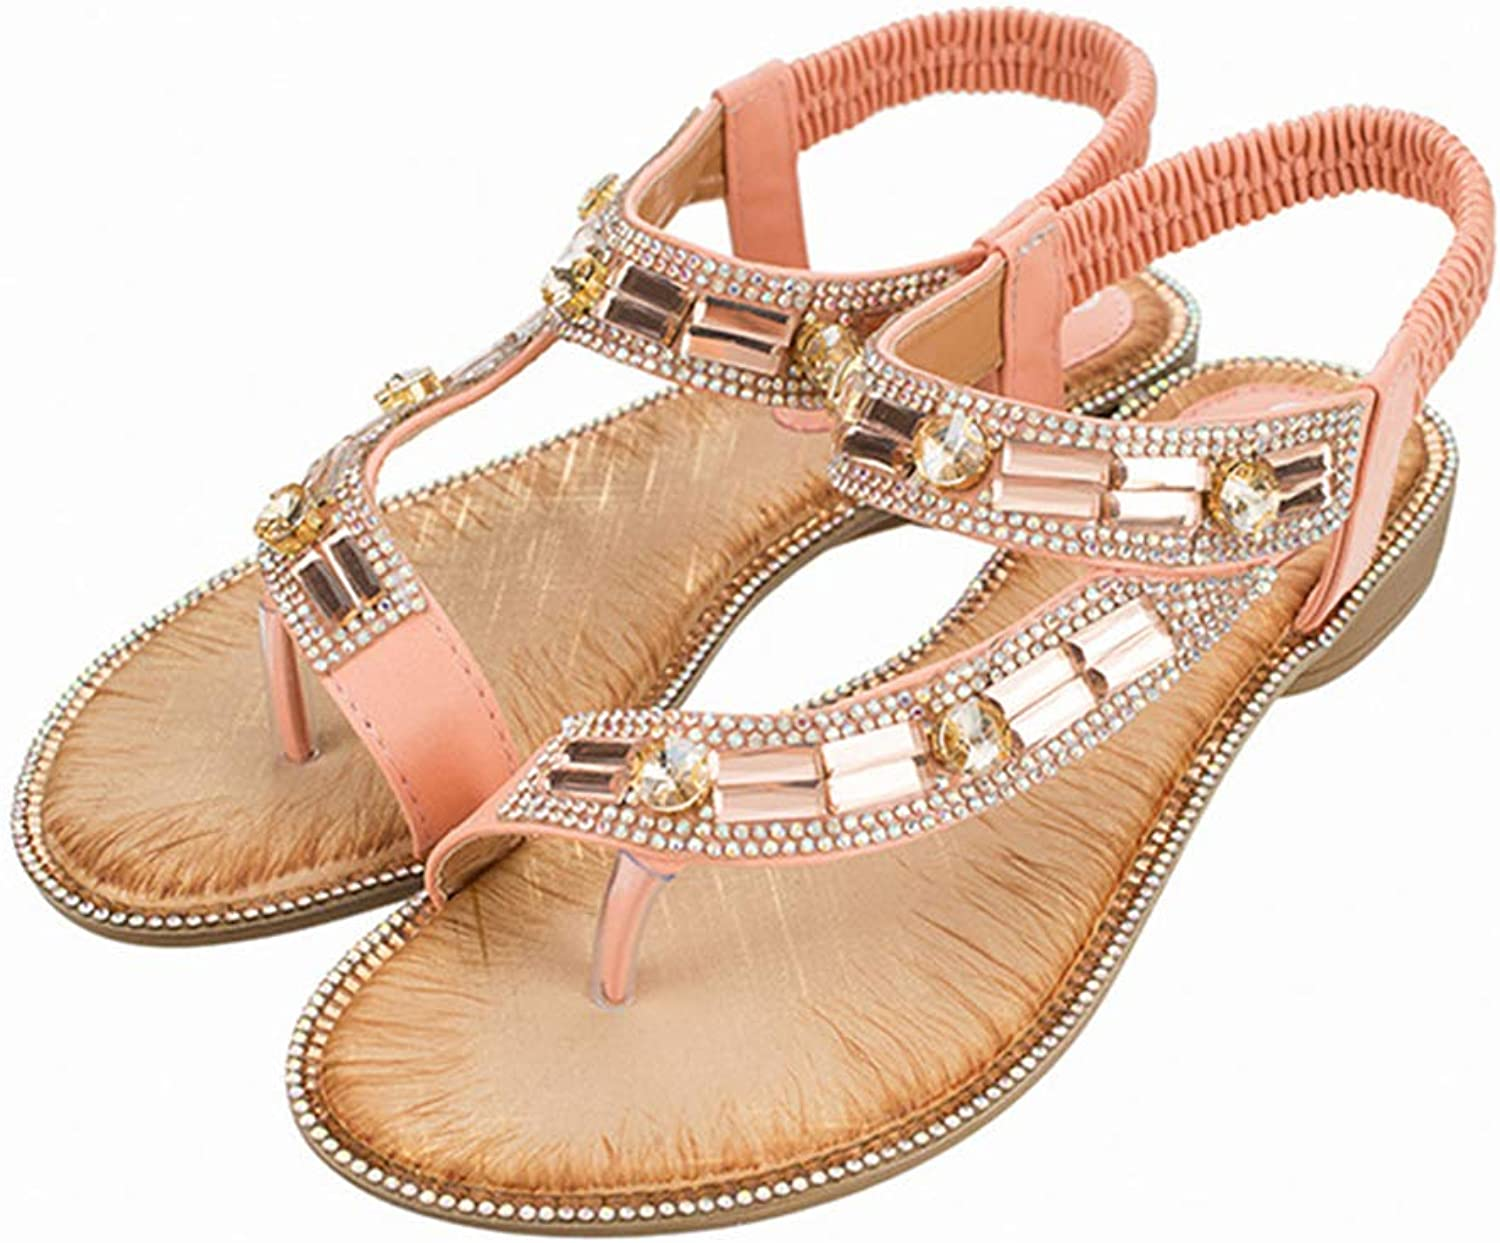 Mubeuo Women's Leather Outdoor Jeweled Thong Sandals Leisure Sandles